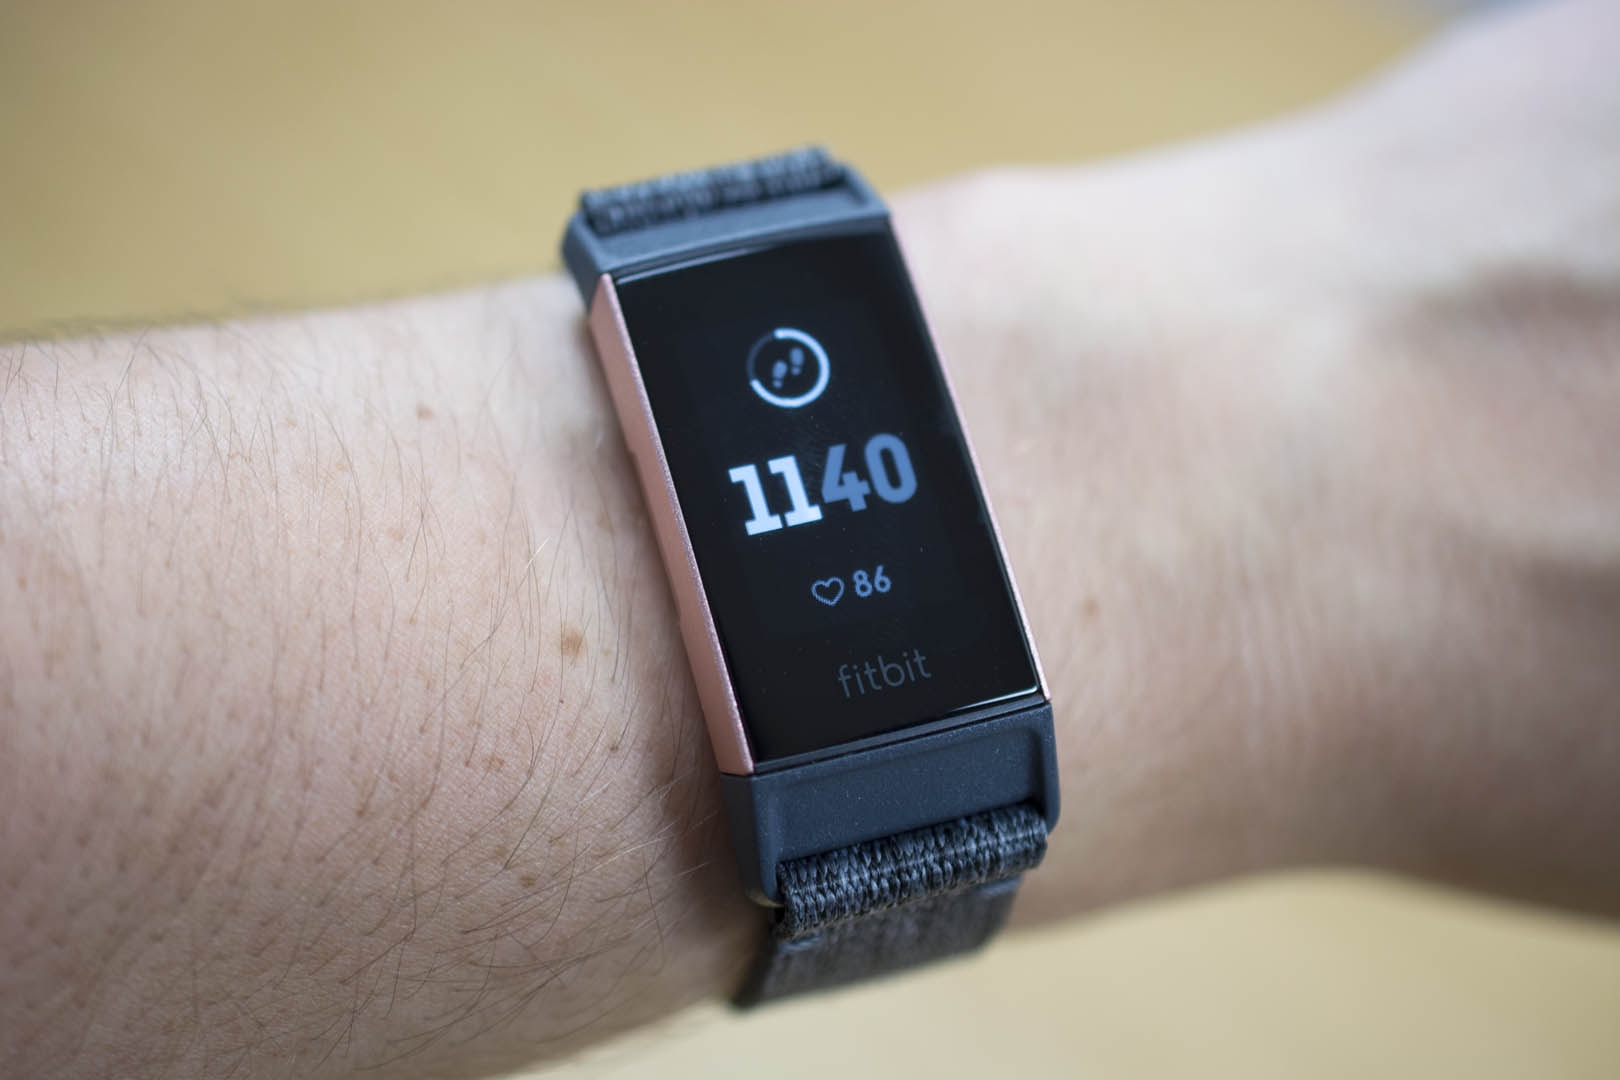 1. Fitbit Charge 3 – The Best Fitness Tracker of 2019